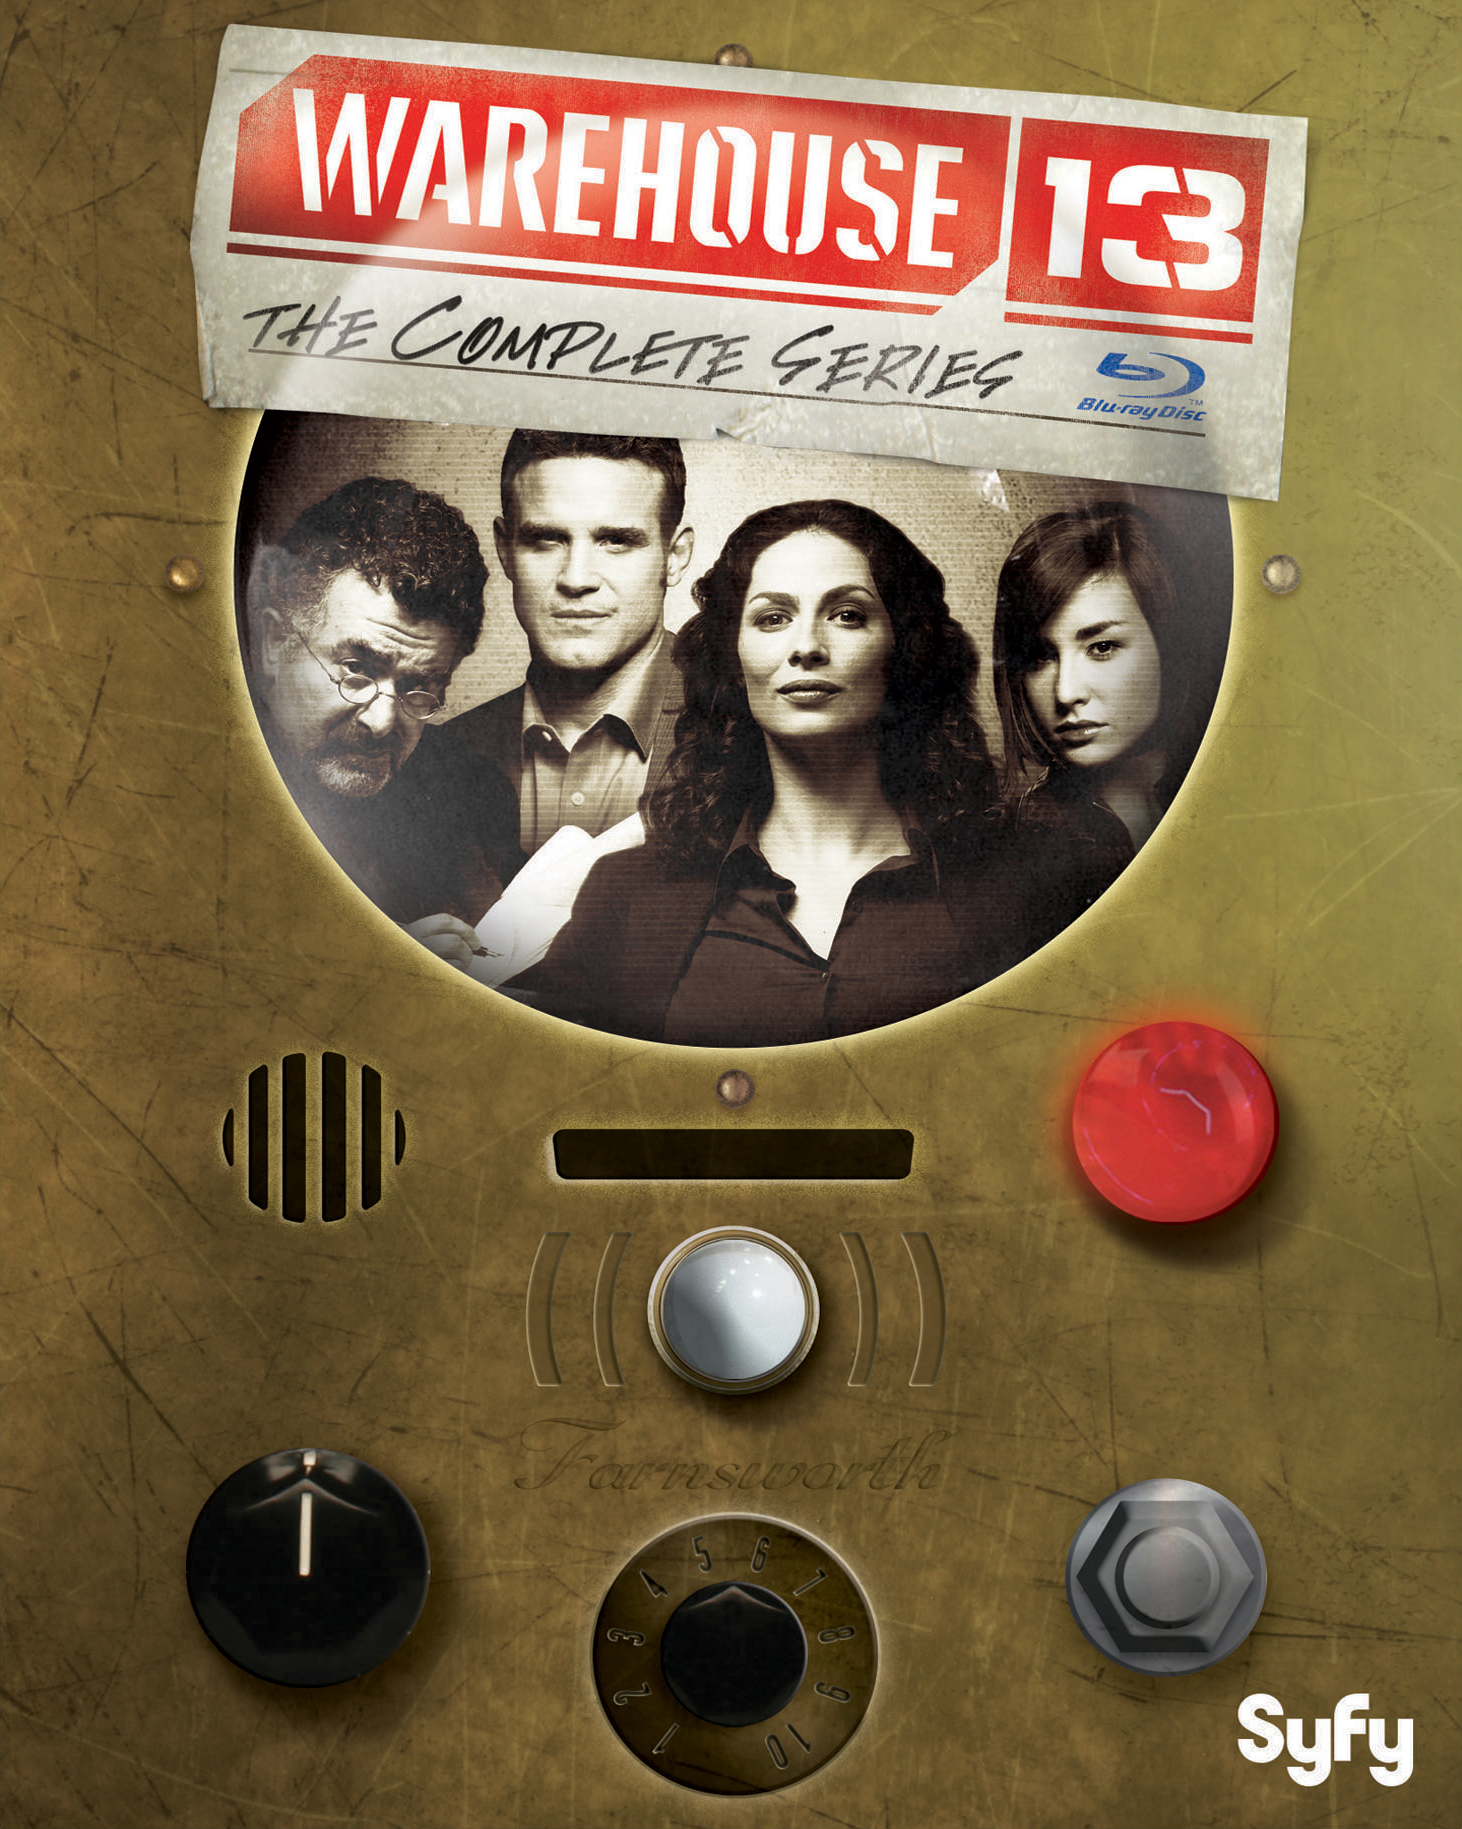 Warehouse 13: The Complete Series (TV) Blu-ray